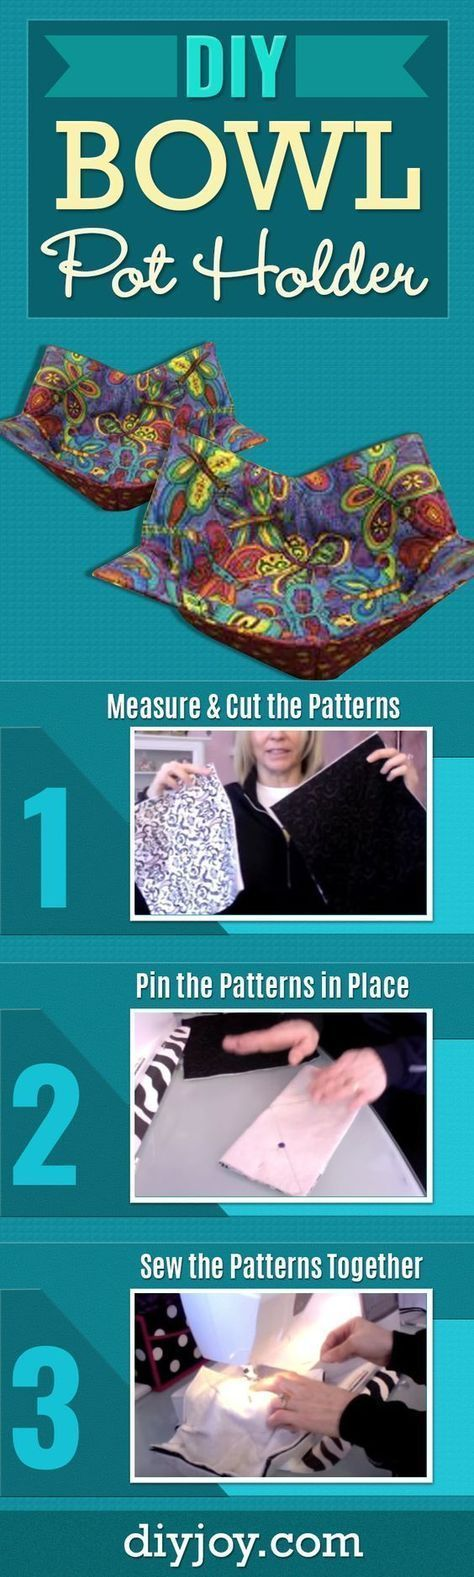 DIY Bowl Potholder - Easy Sewing Projects With Free Sewing Patterns ...